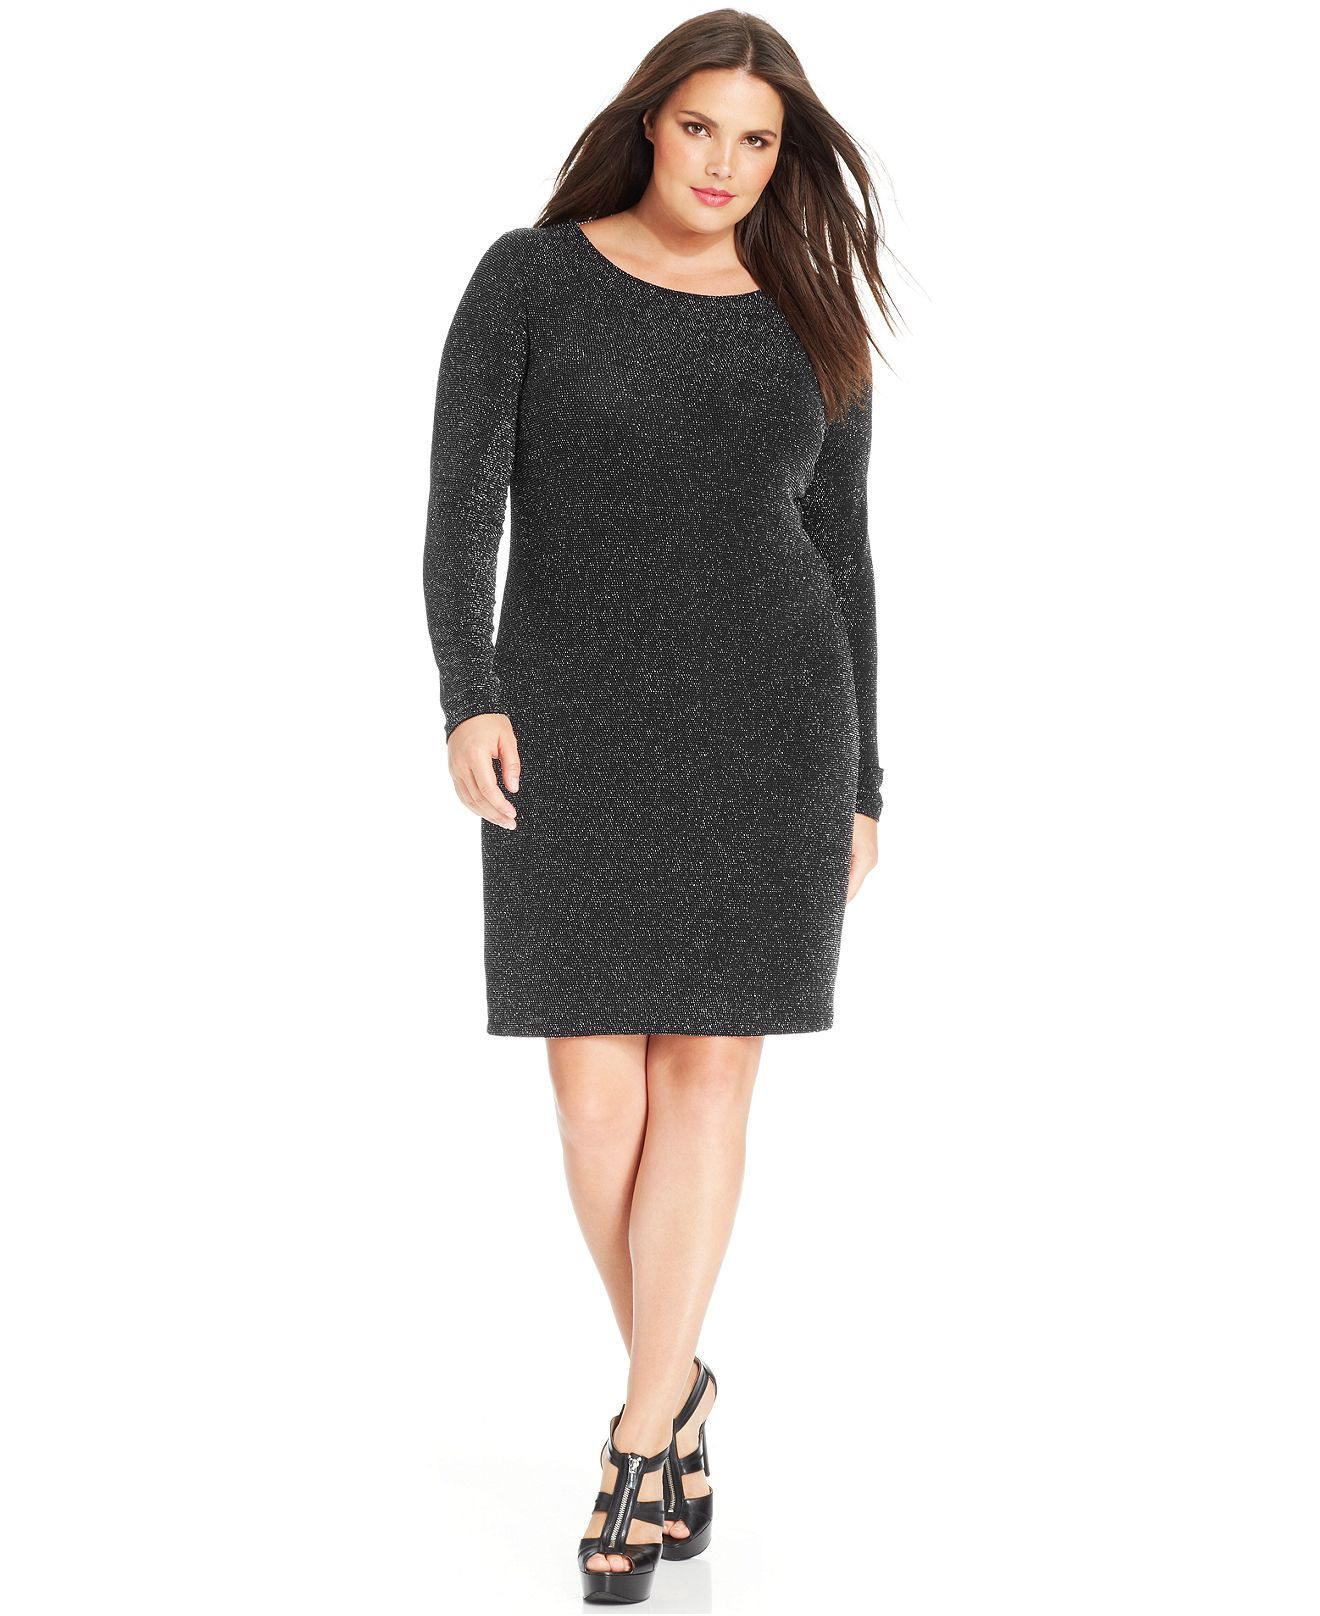 cd020f412e7 MICHAEL Michael Kors Plus Size Dress